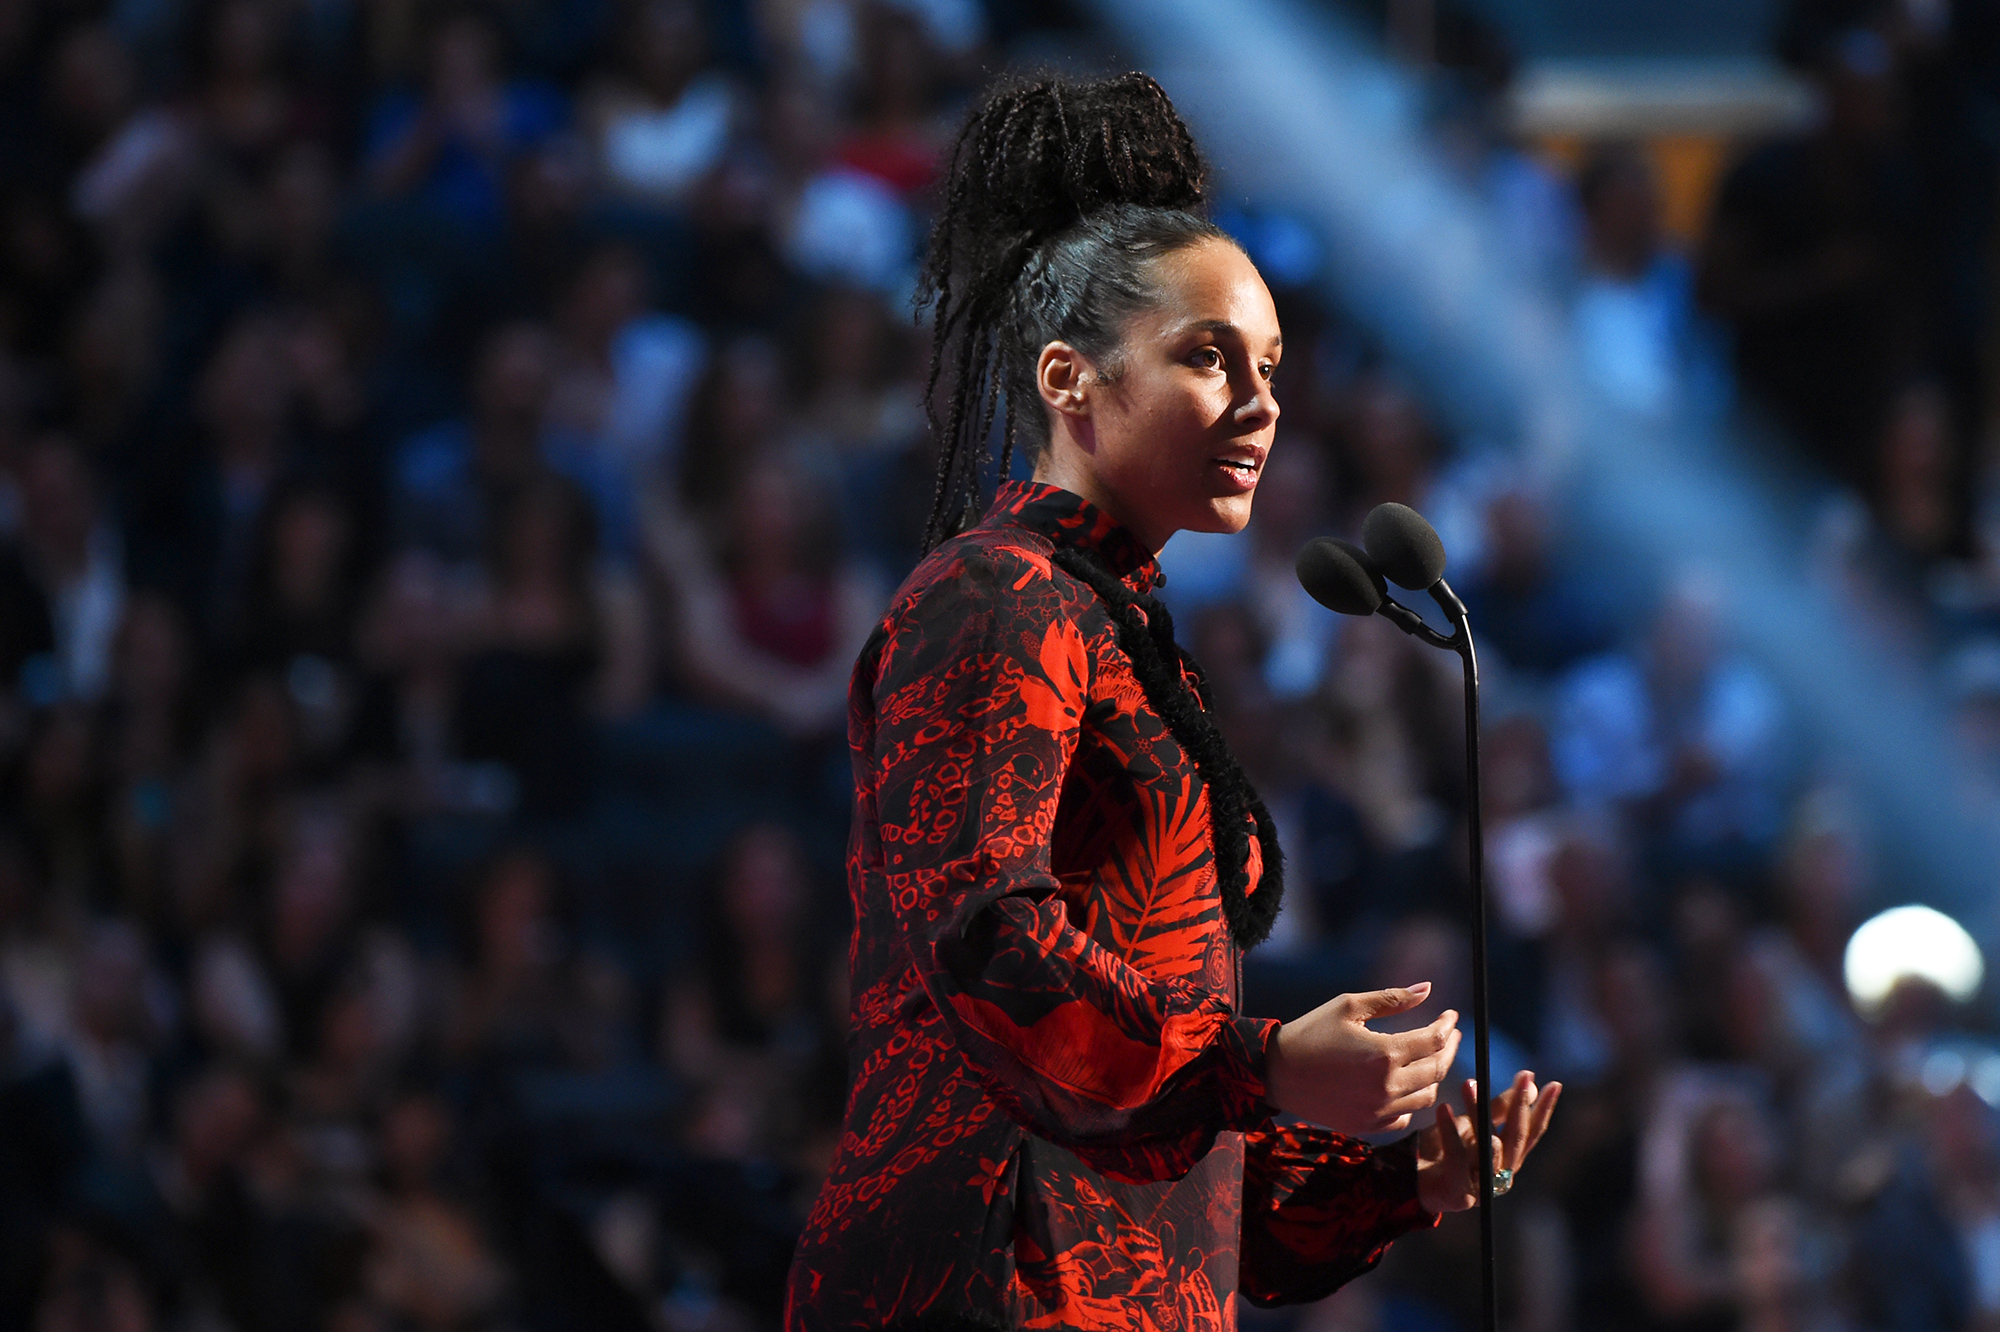 Alicia Keys speaks during the 2016 MTV Video Music Awards at Madison Square Garden on Aug. 28, 2016 in New York City.